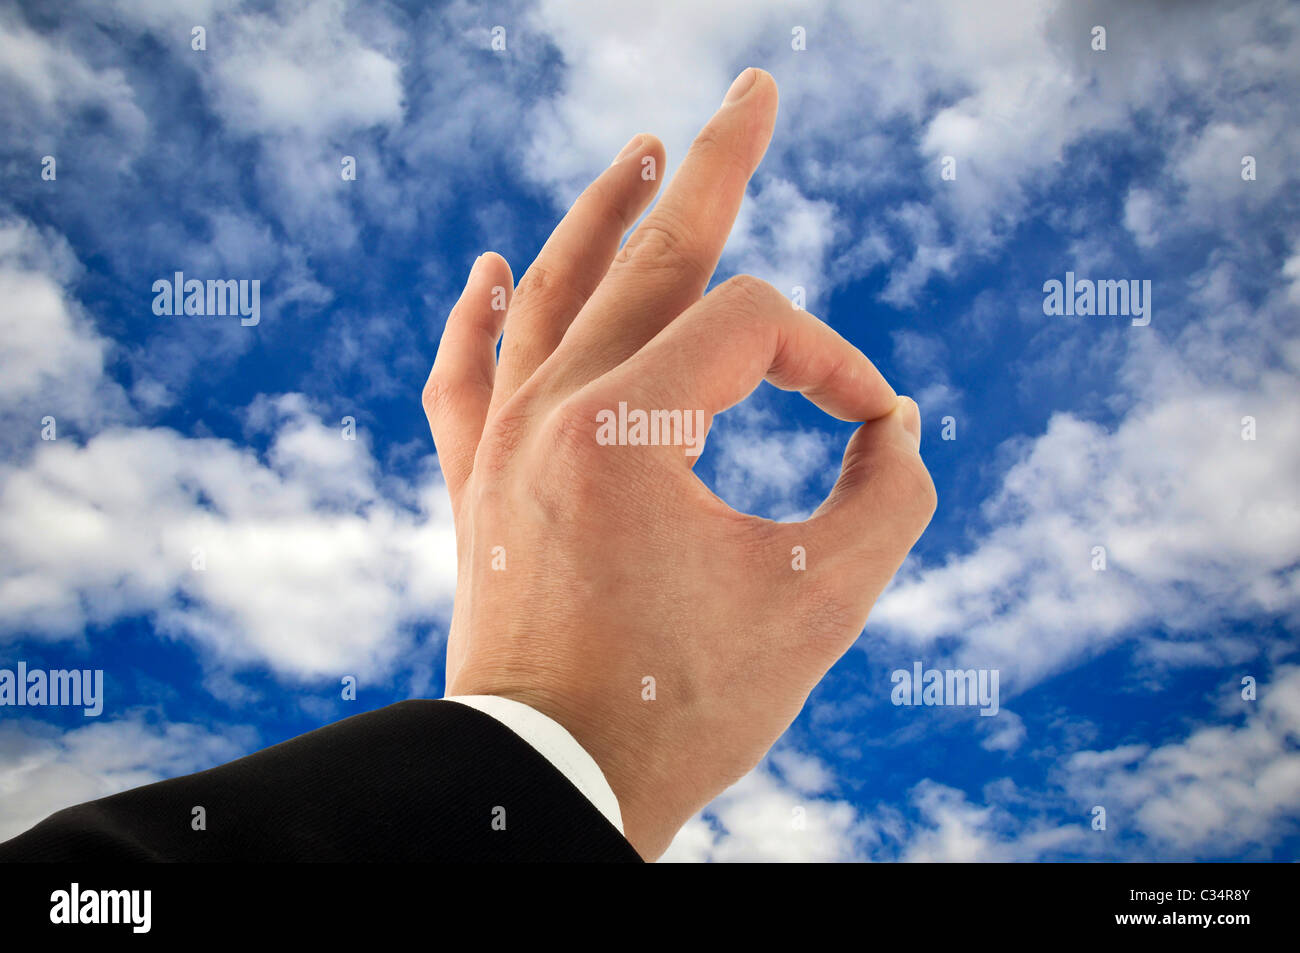 Business man's hand signing okay in the sky - Stock Image